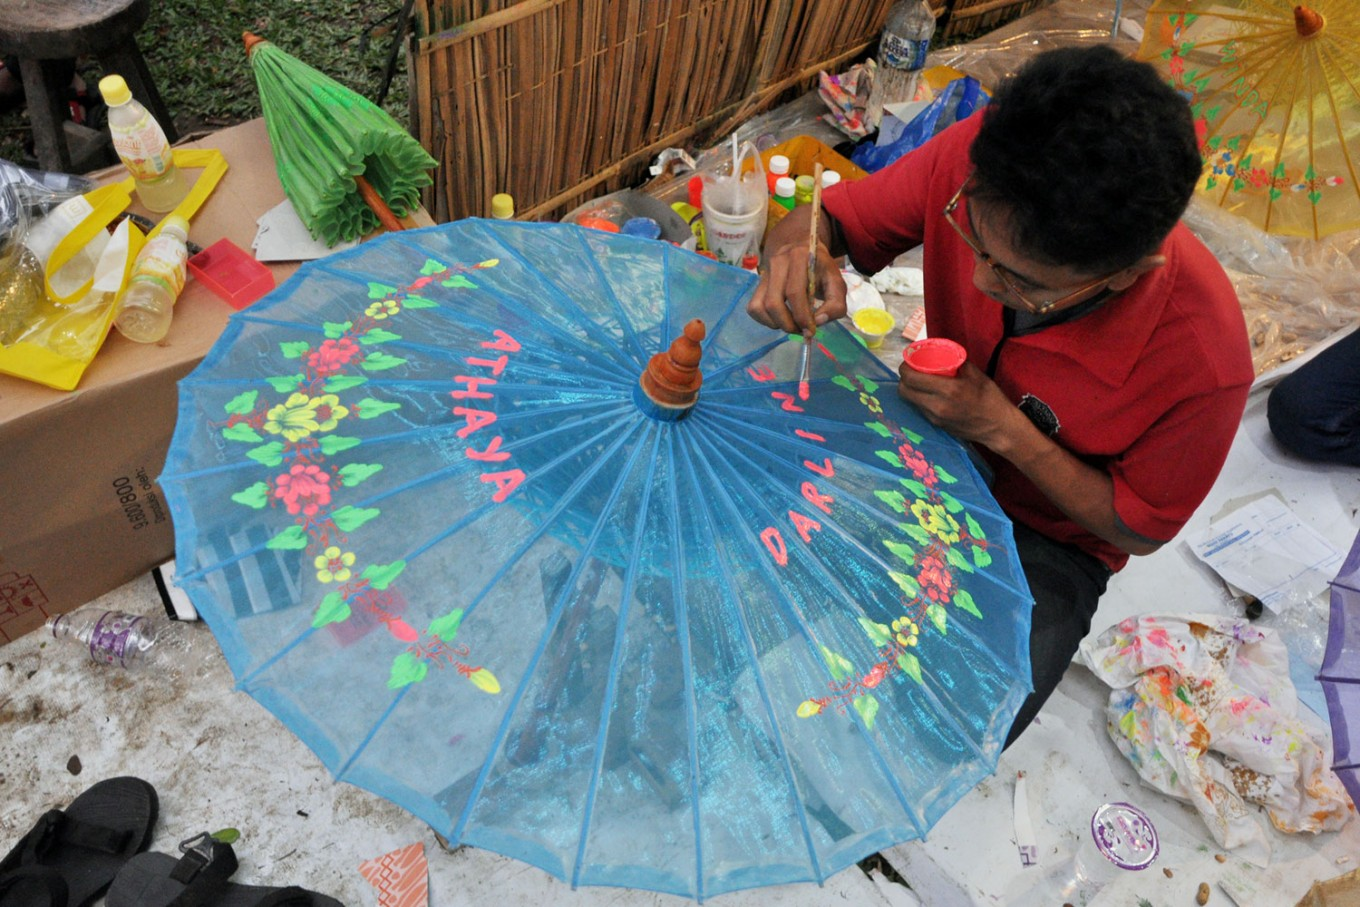 A man paints a name on an umbrella during the 2016 Indonesian Umbrella Festival. Umbrellas decorated with names, produced by artisans from Juwiring, Klaten,